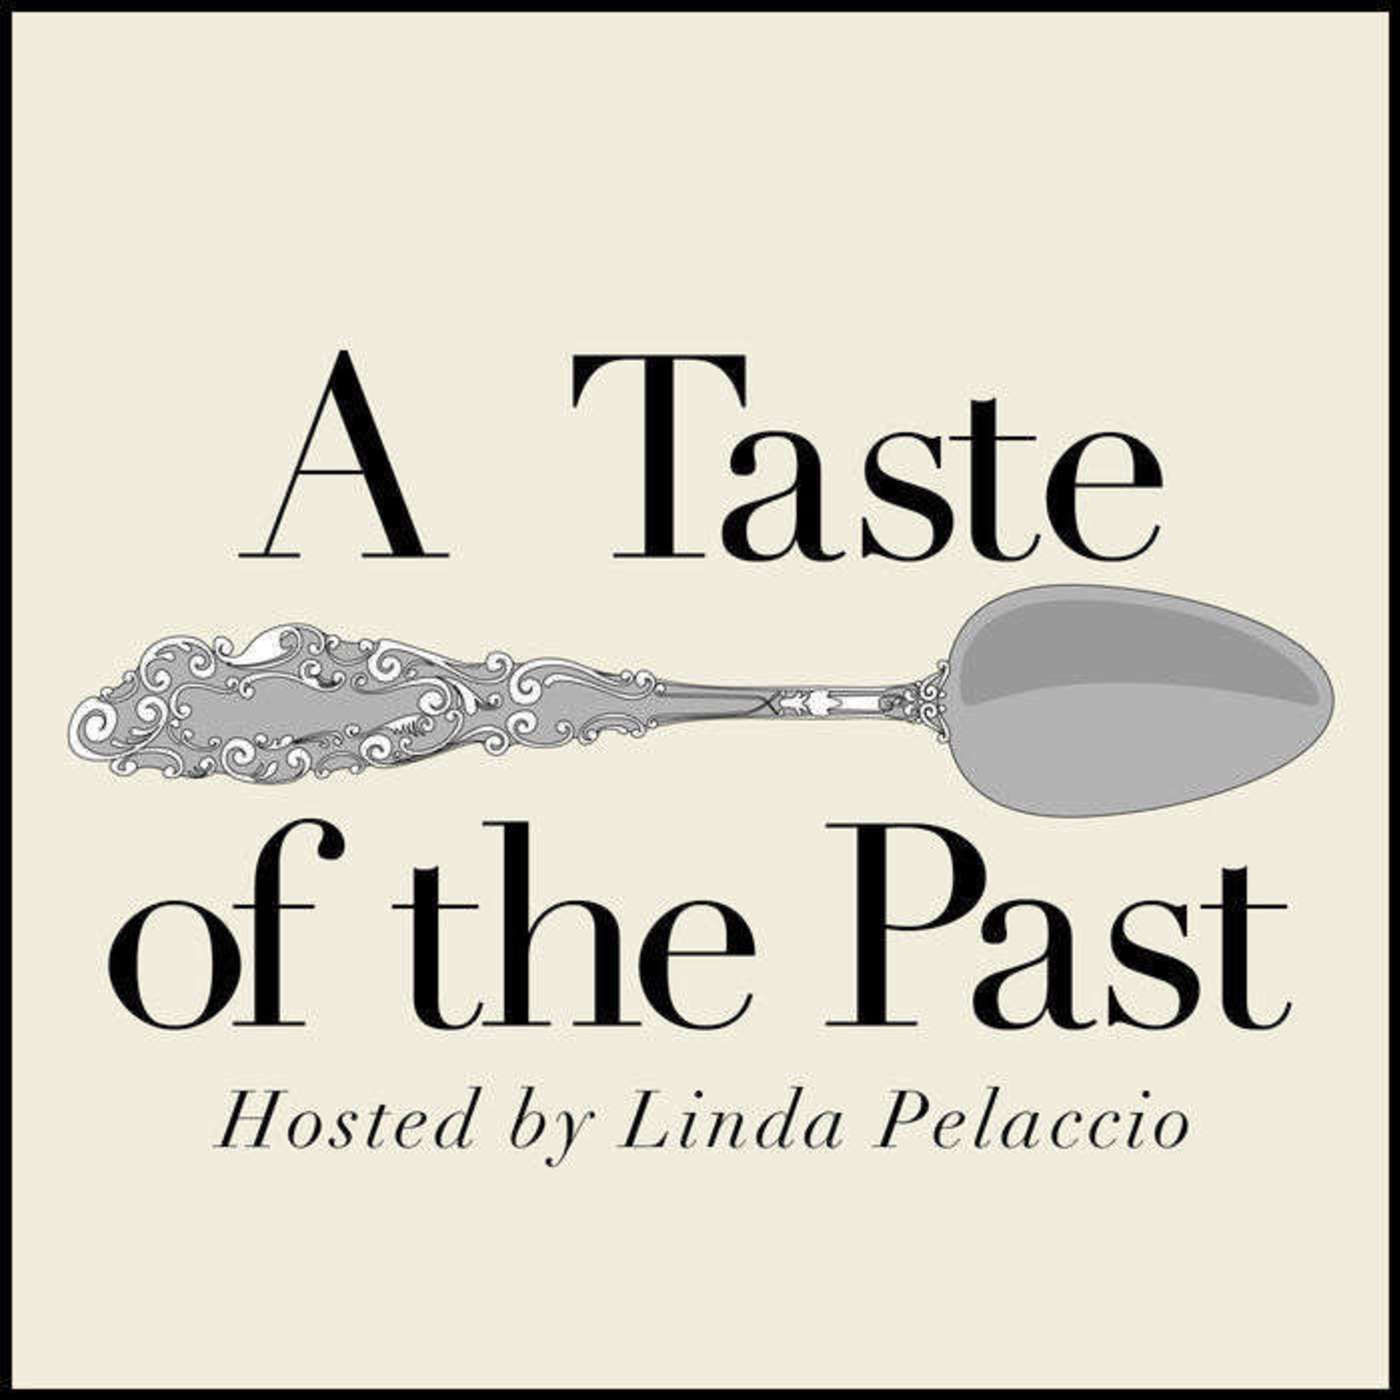 Episode 149: Mastering the Art of Soviet Cooking